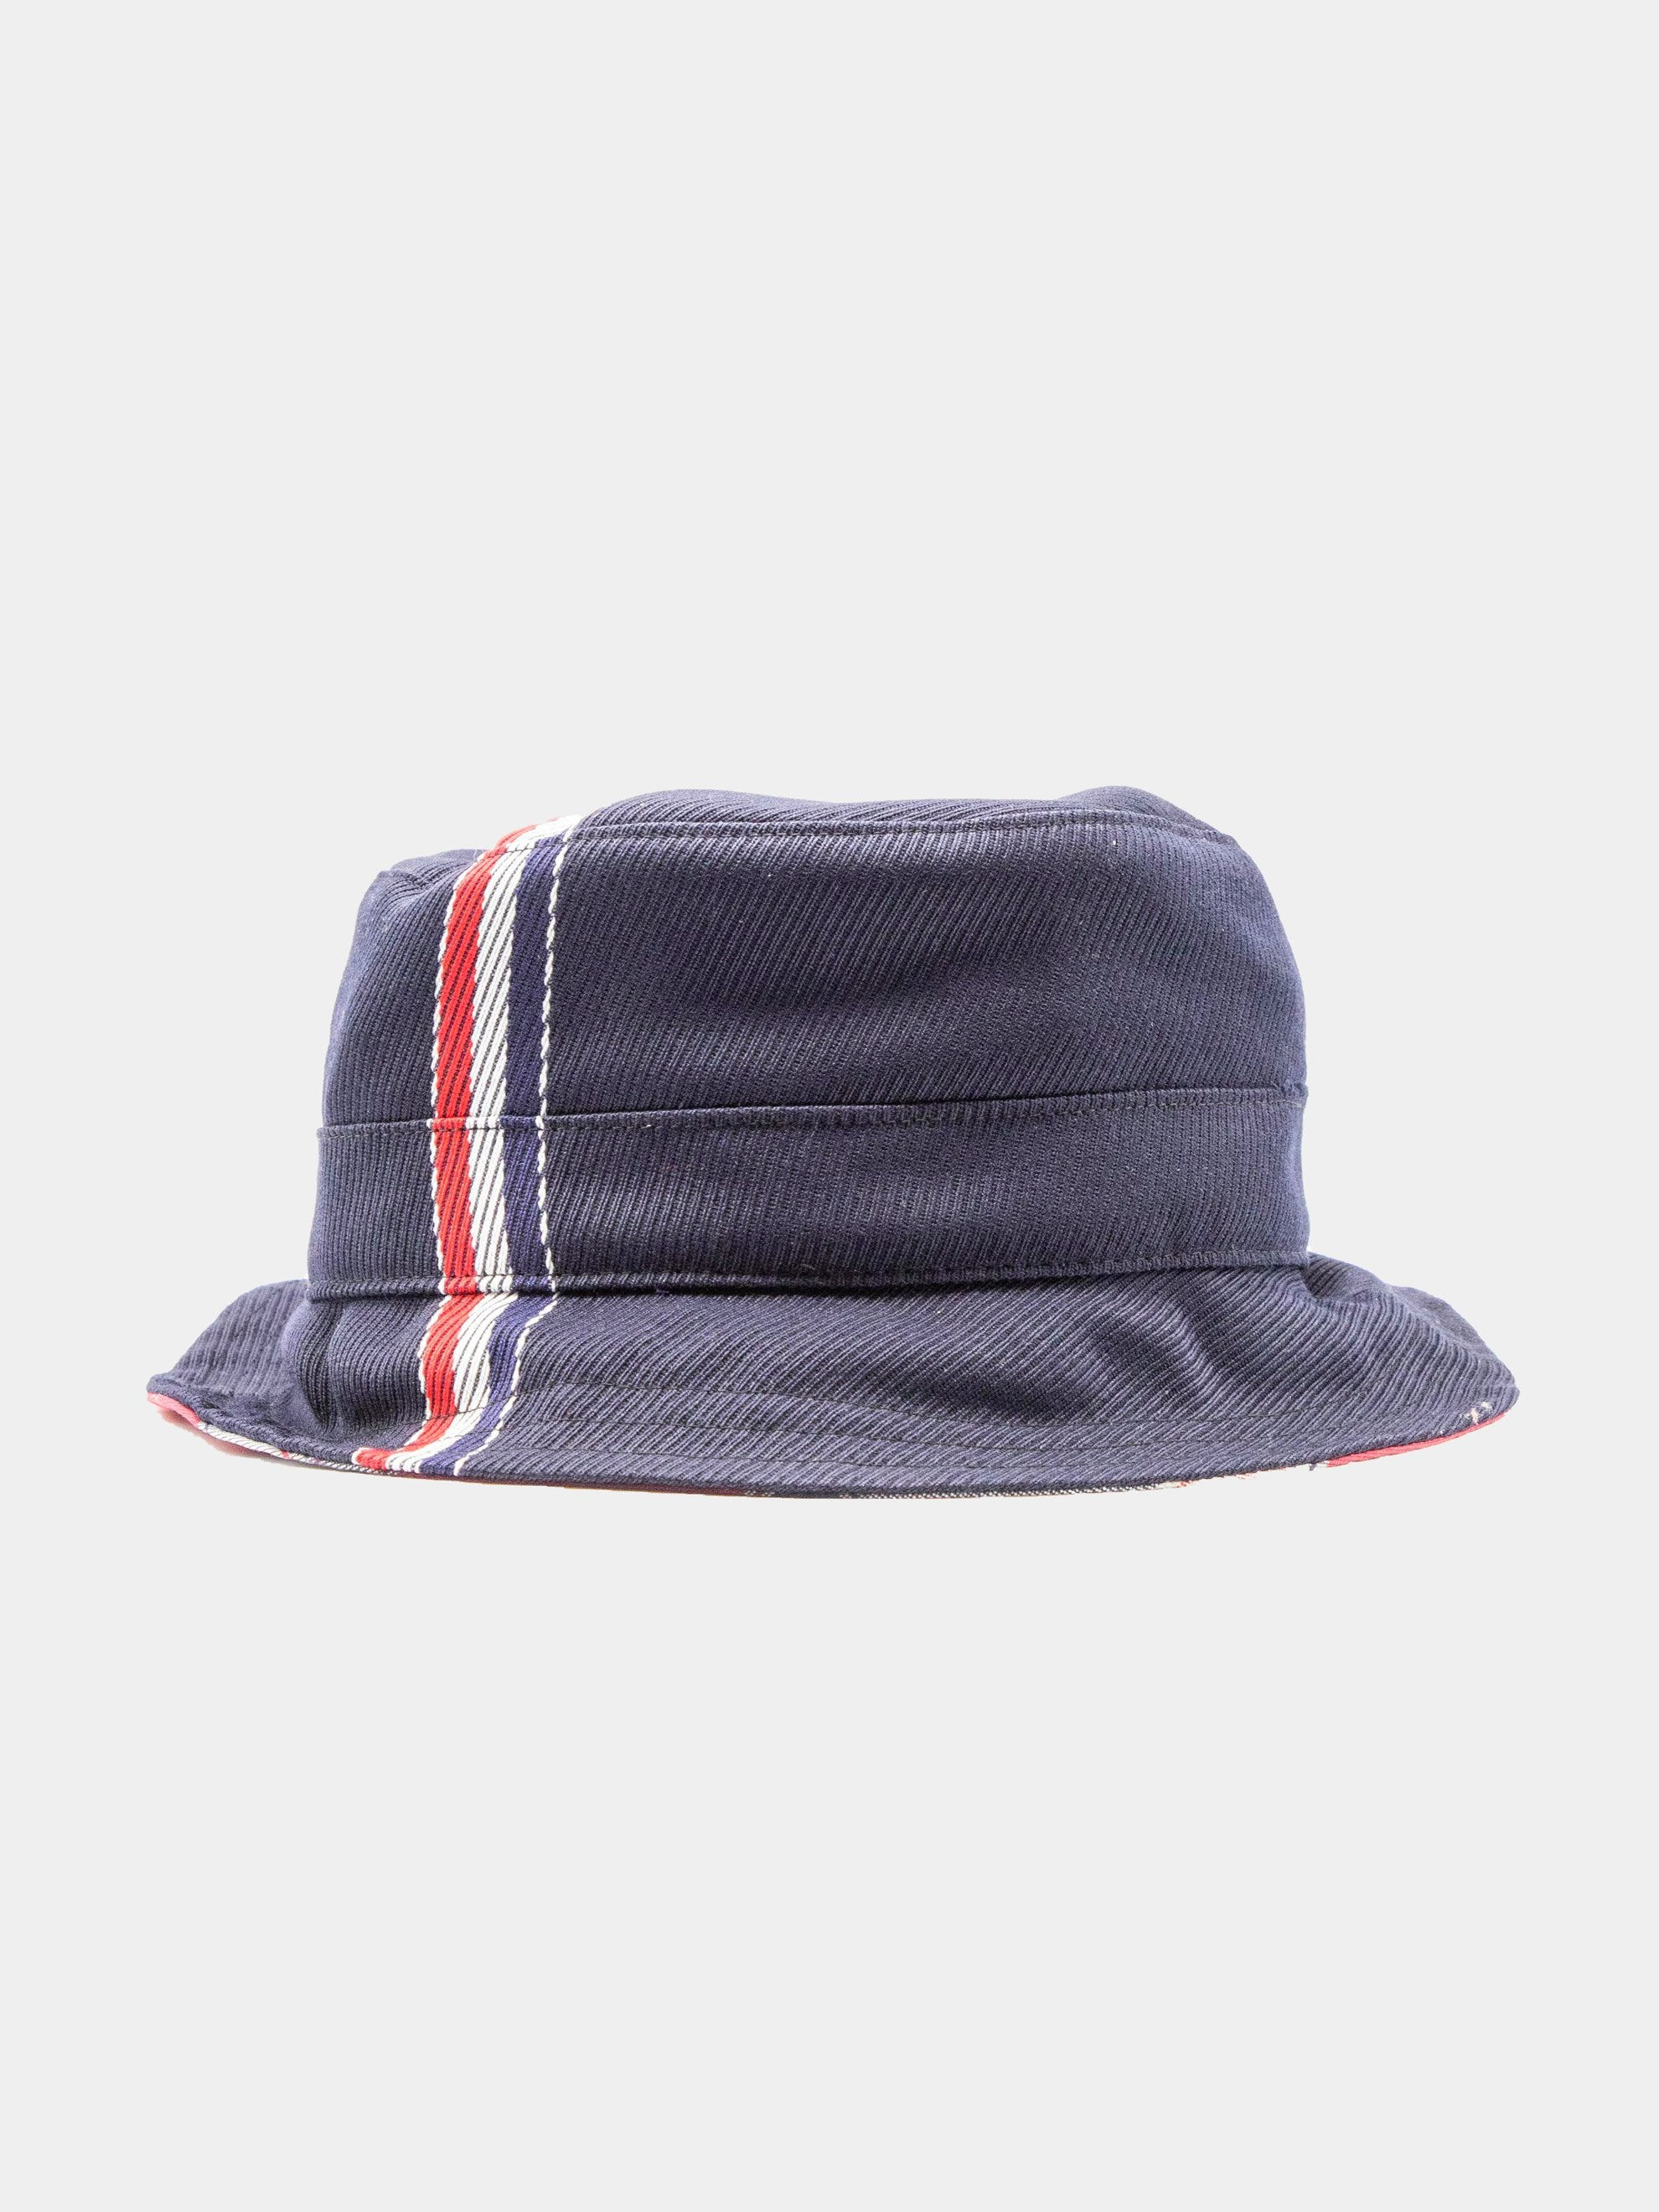 Navy Bucket Hat W/ Lining In Funmix In School Uniform Twill 1